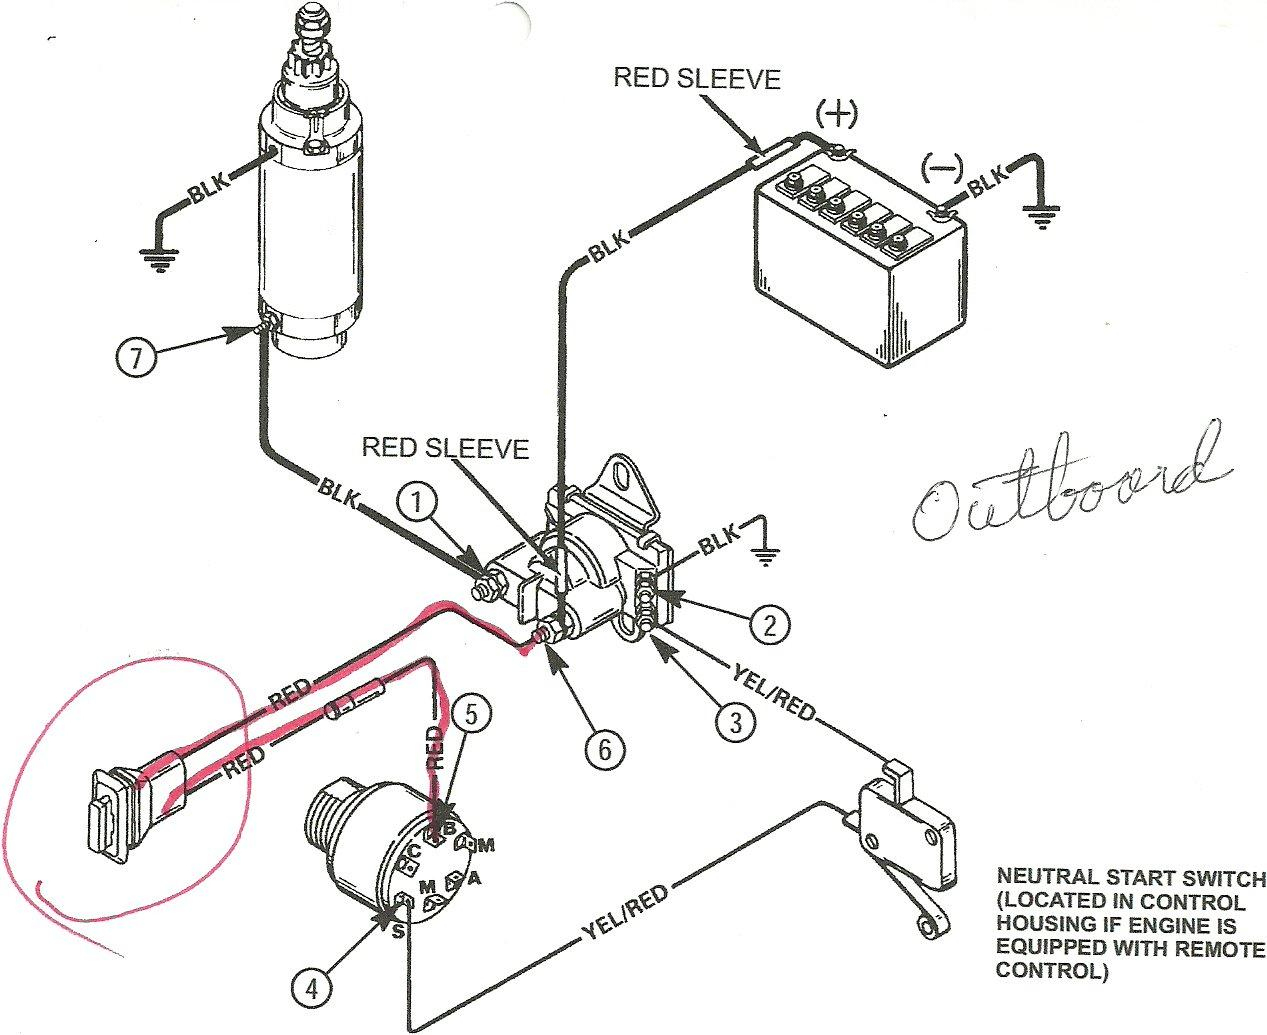 Yamaha Outboard Ignition Switch Wiring Diagram - Trusted Wiring - Yamaha Outboard Wiring Diagram Pdf